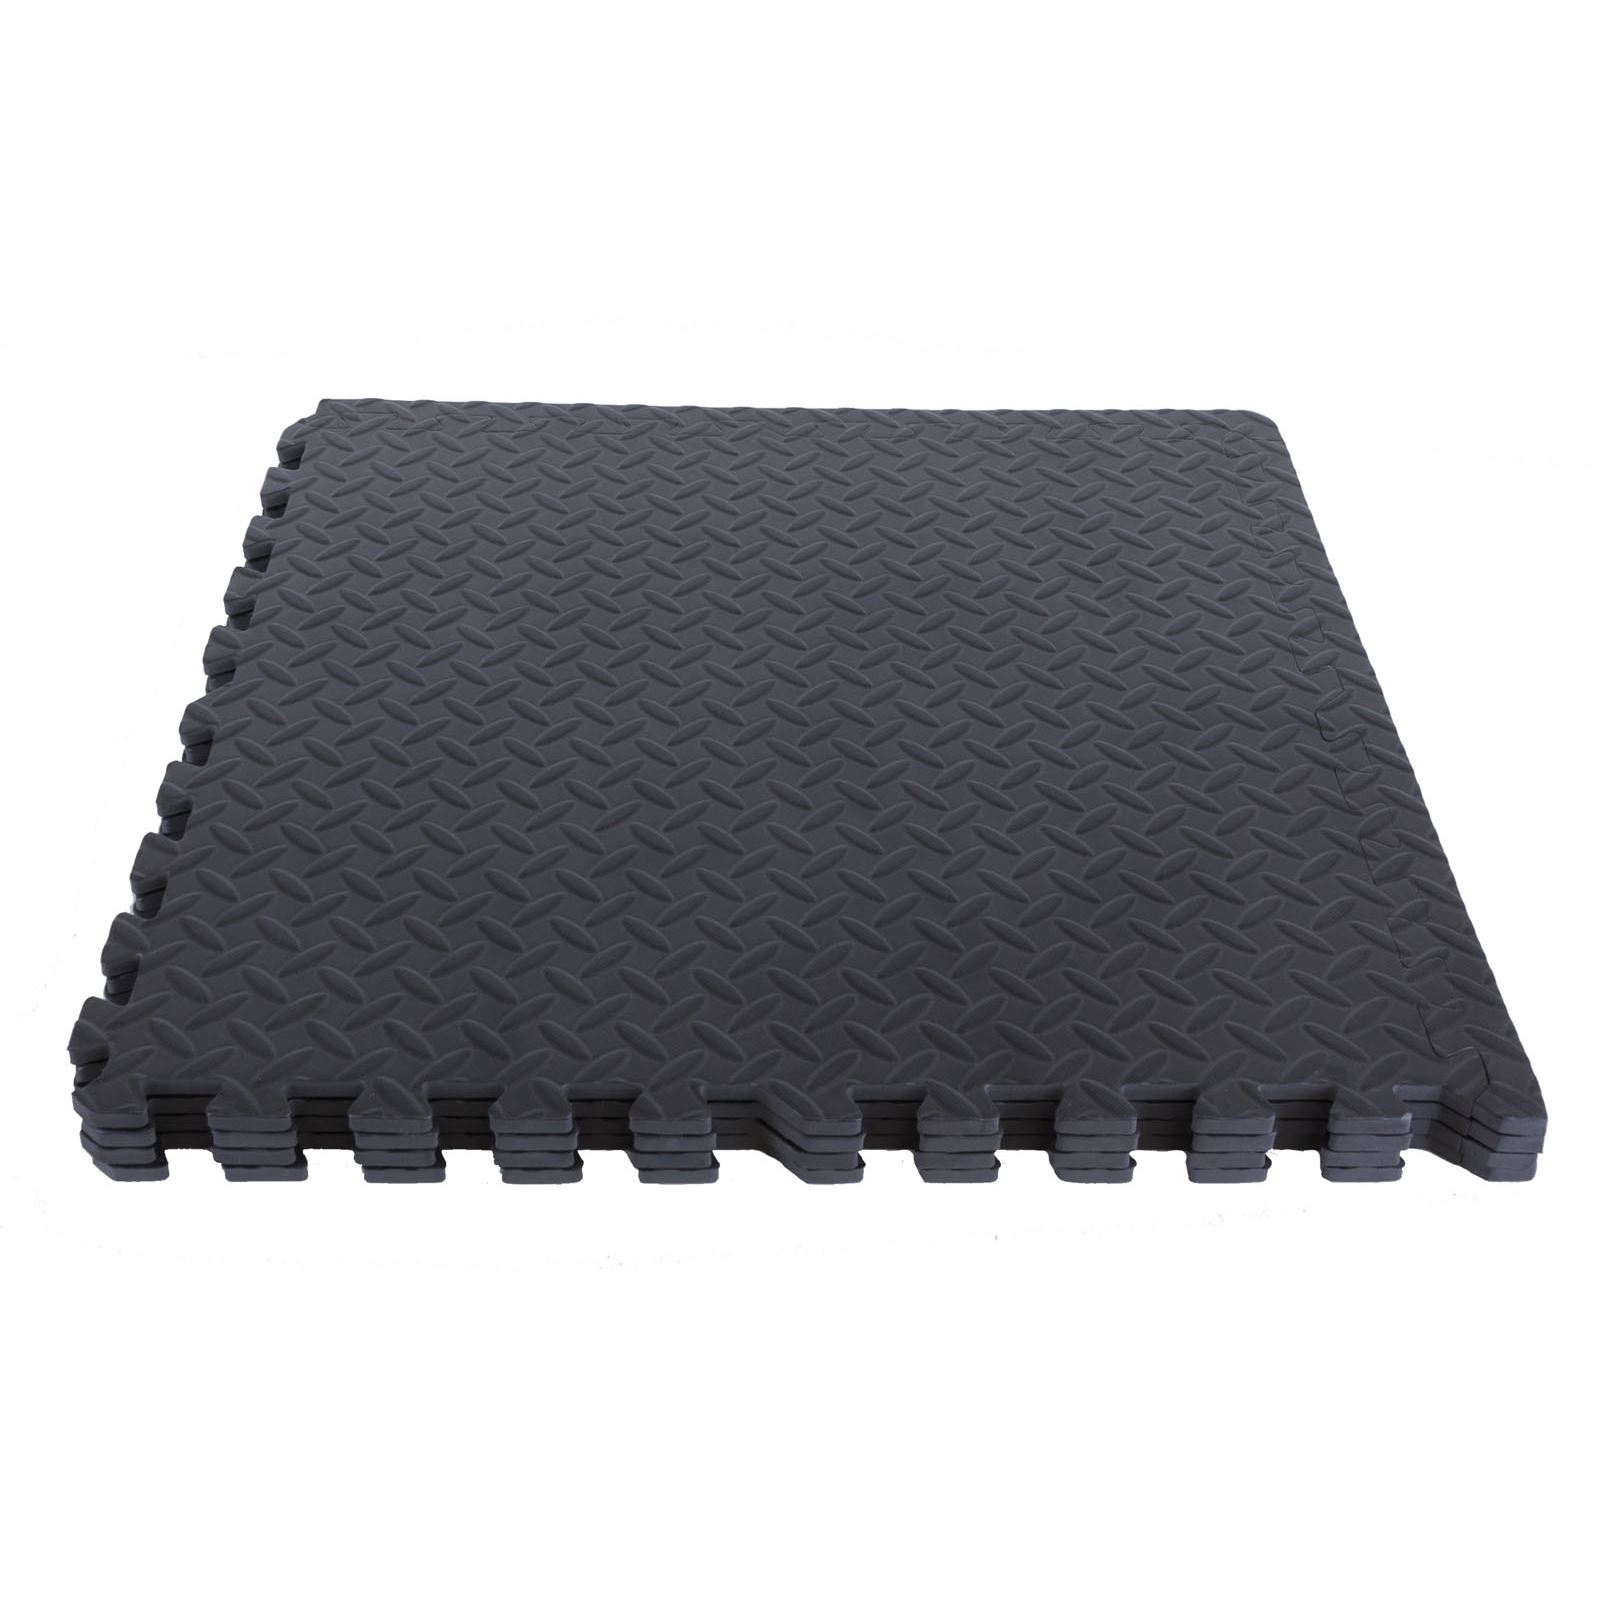 interlocking eva soft foam exercise floor mats gym garage. Black Bedroom Furniture Sets. Home Design Ideas